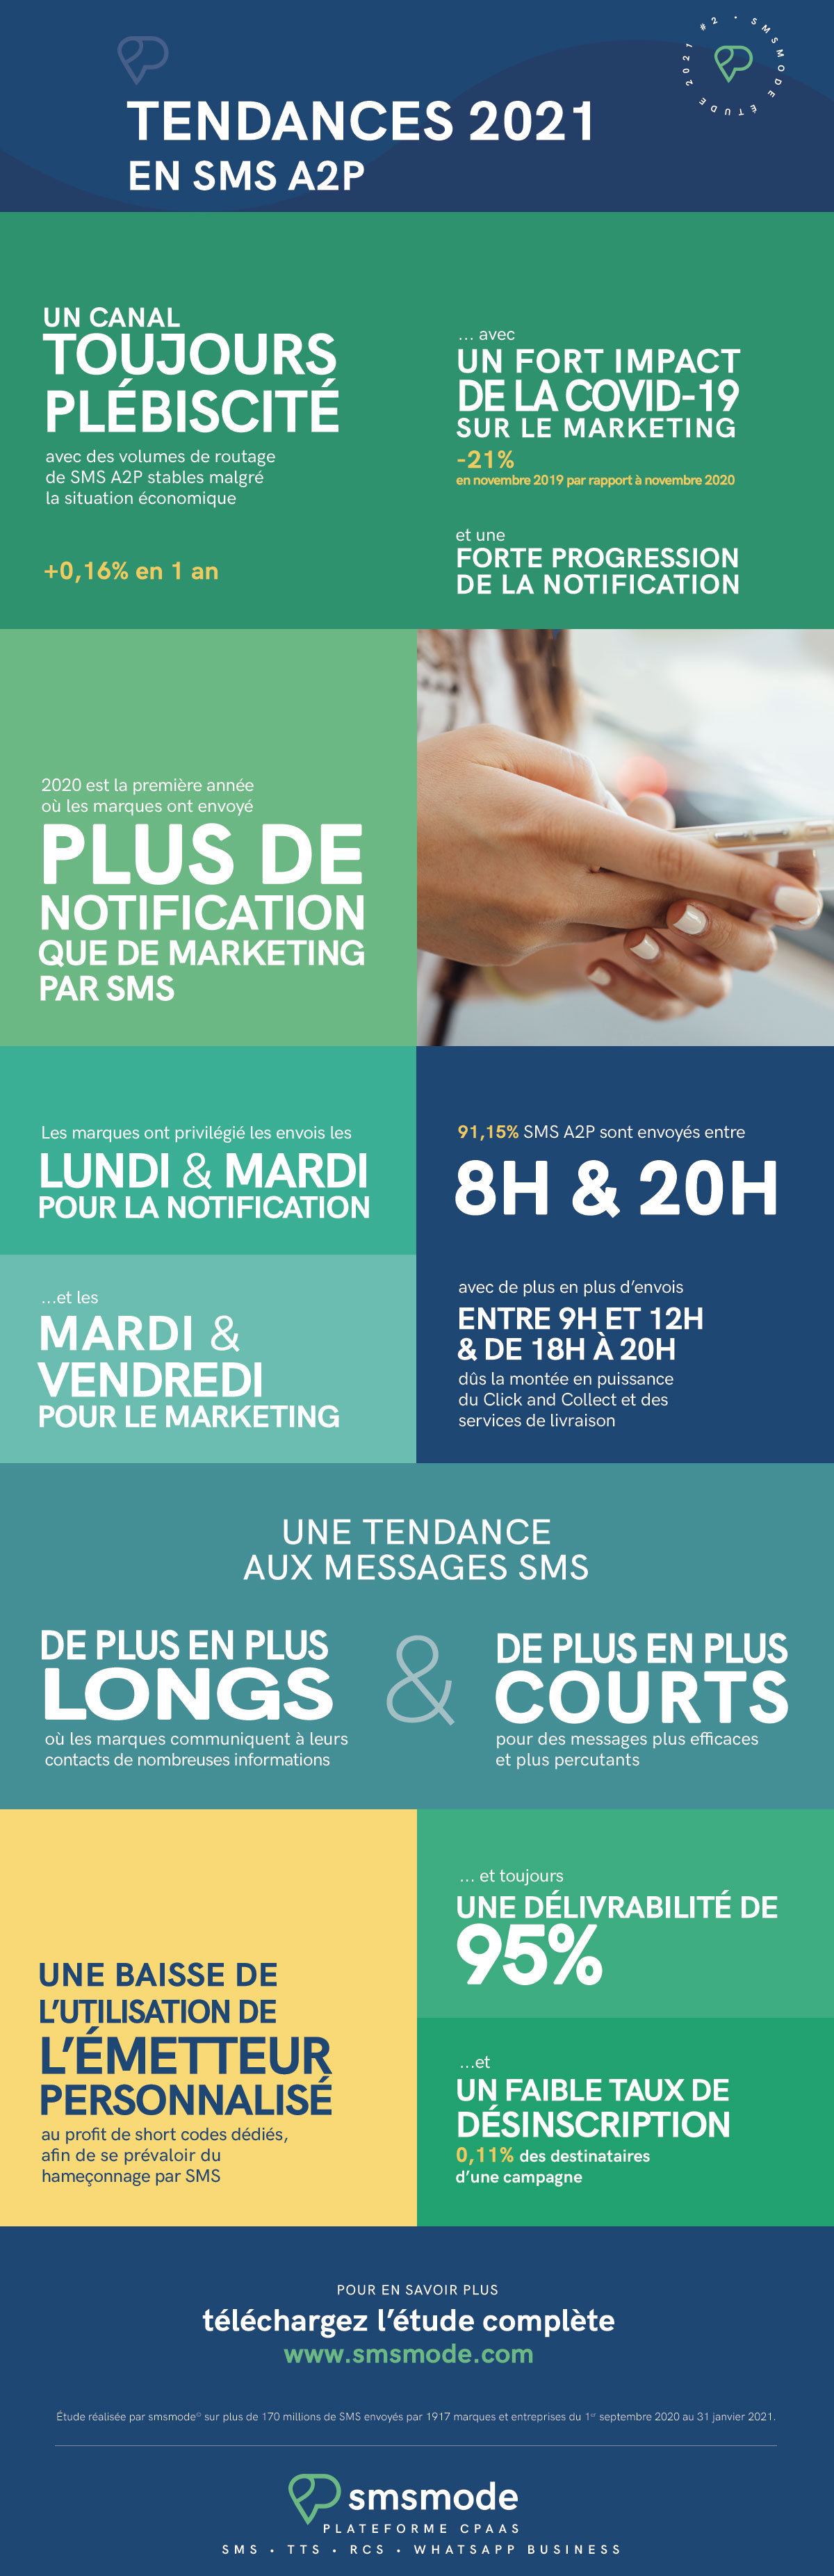 infography smsmode sms A2P business use